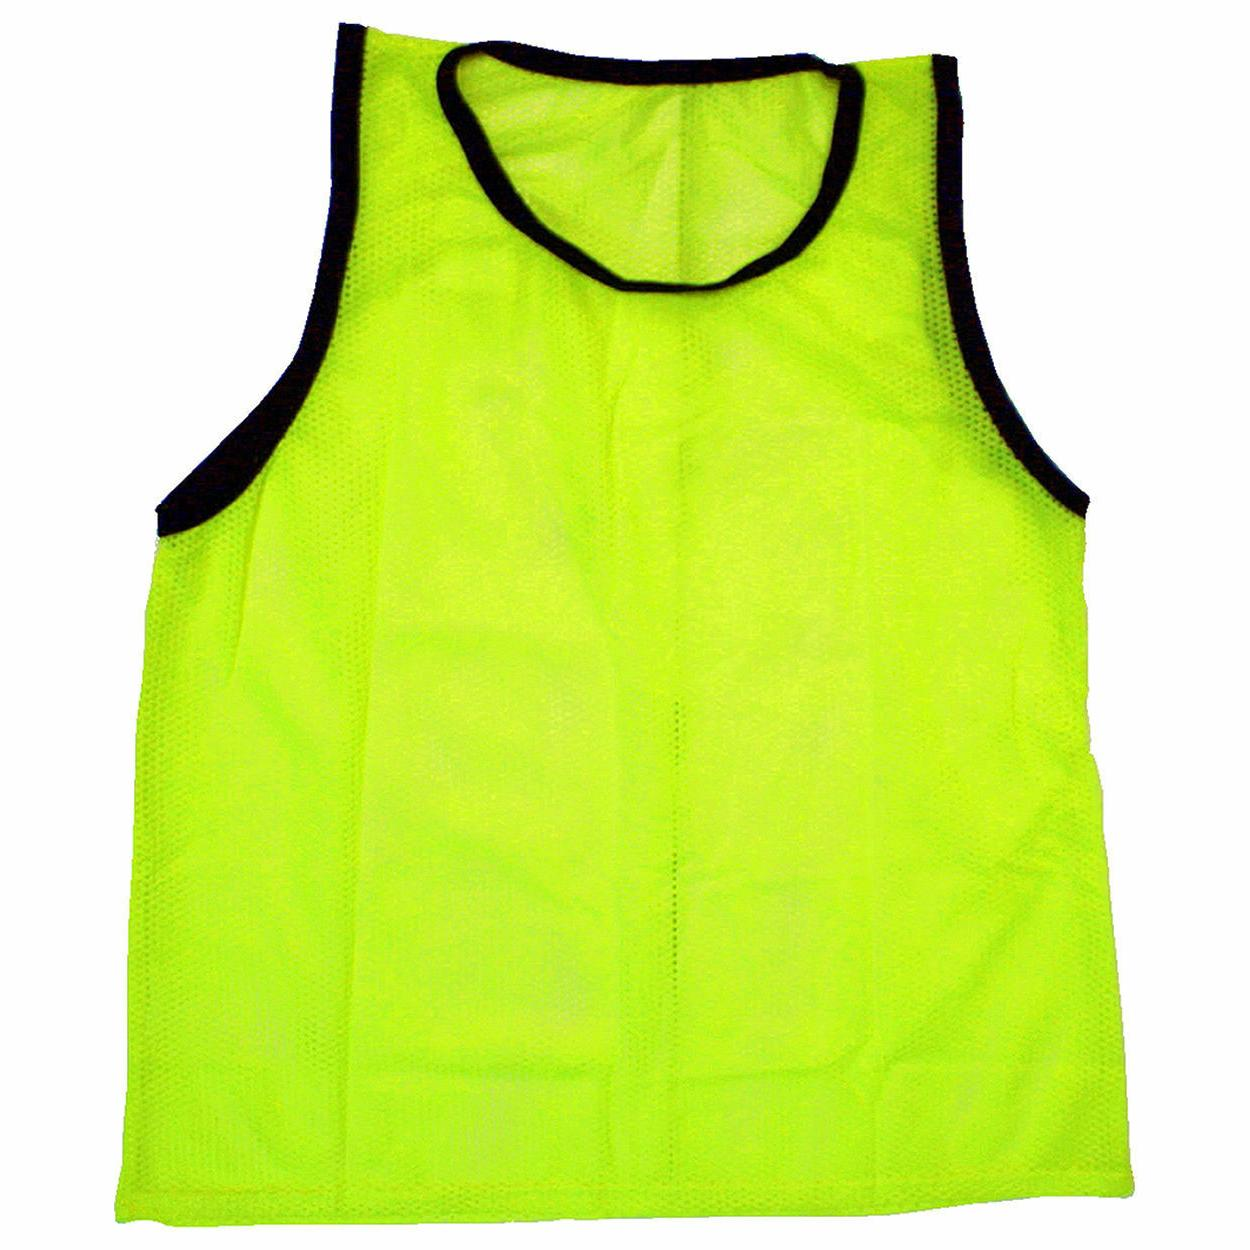 scrimmage vests soccer basketball football adult pinnies